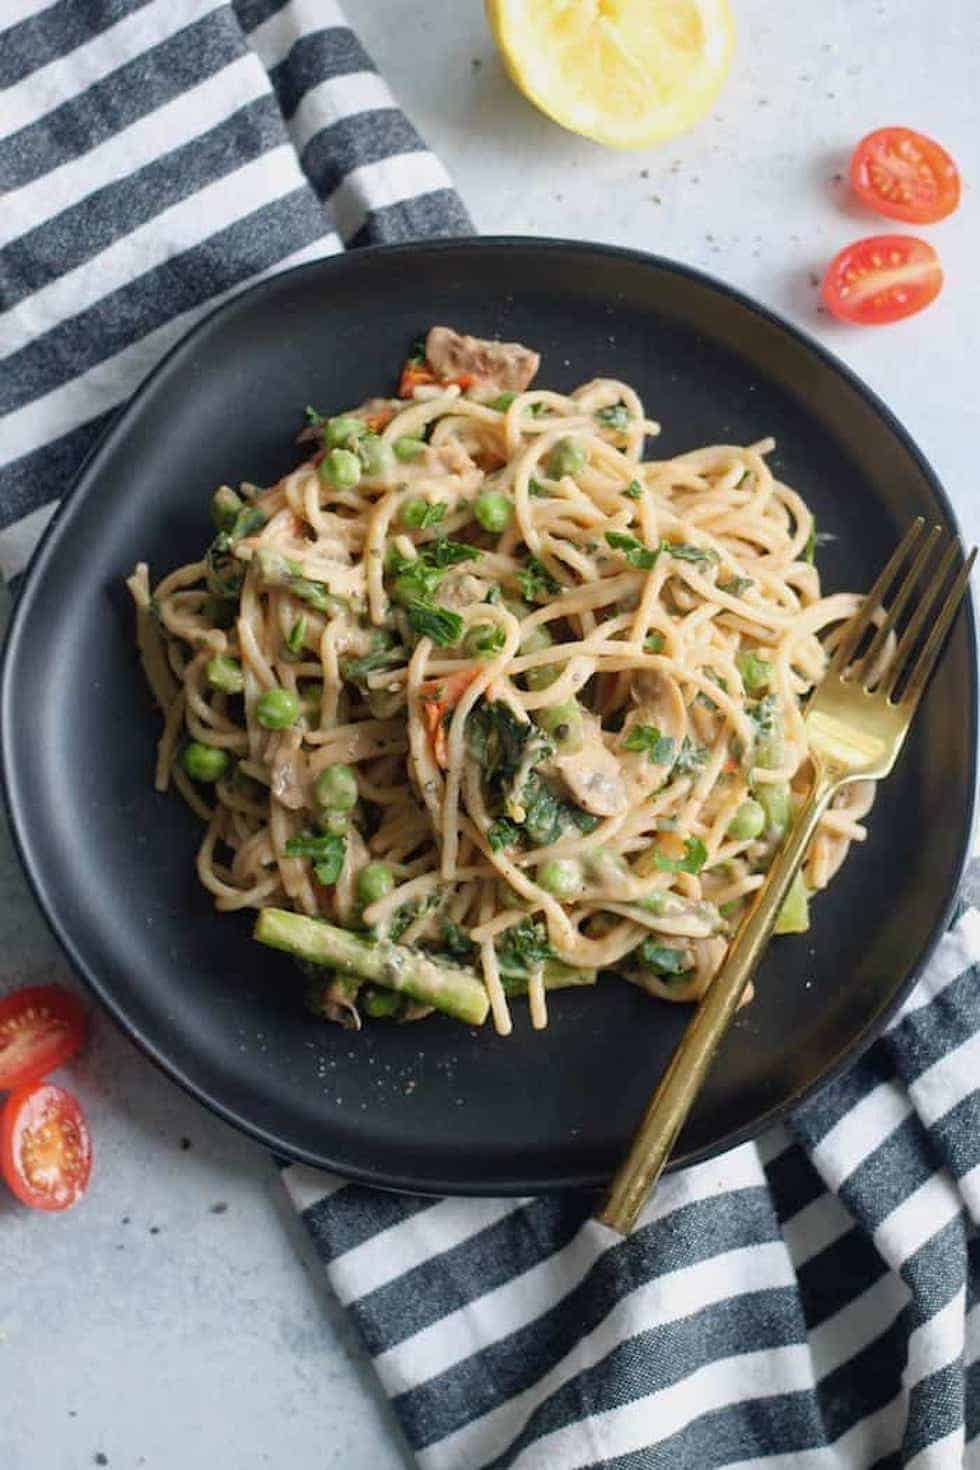 Vegetarian dinner recipes include this creamy spring vegetable pasta on a black plate with gold fork and striped napkin.